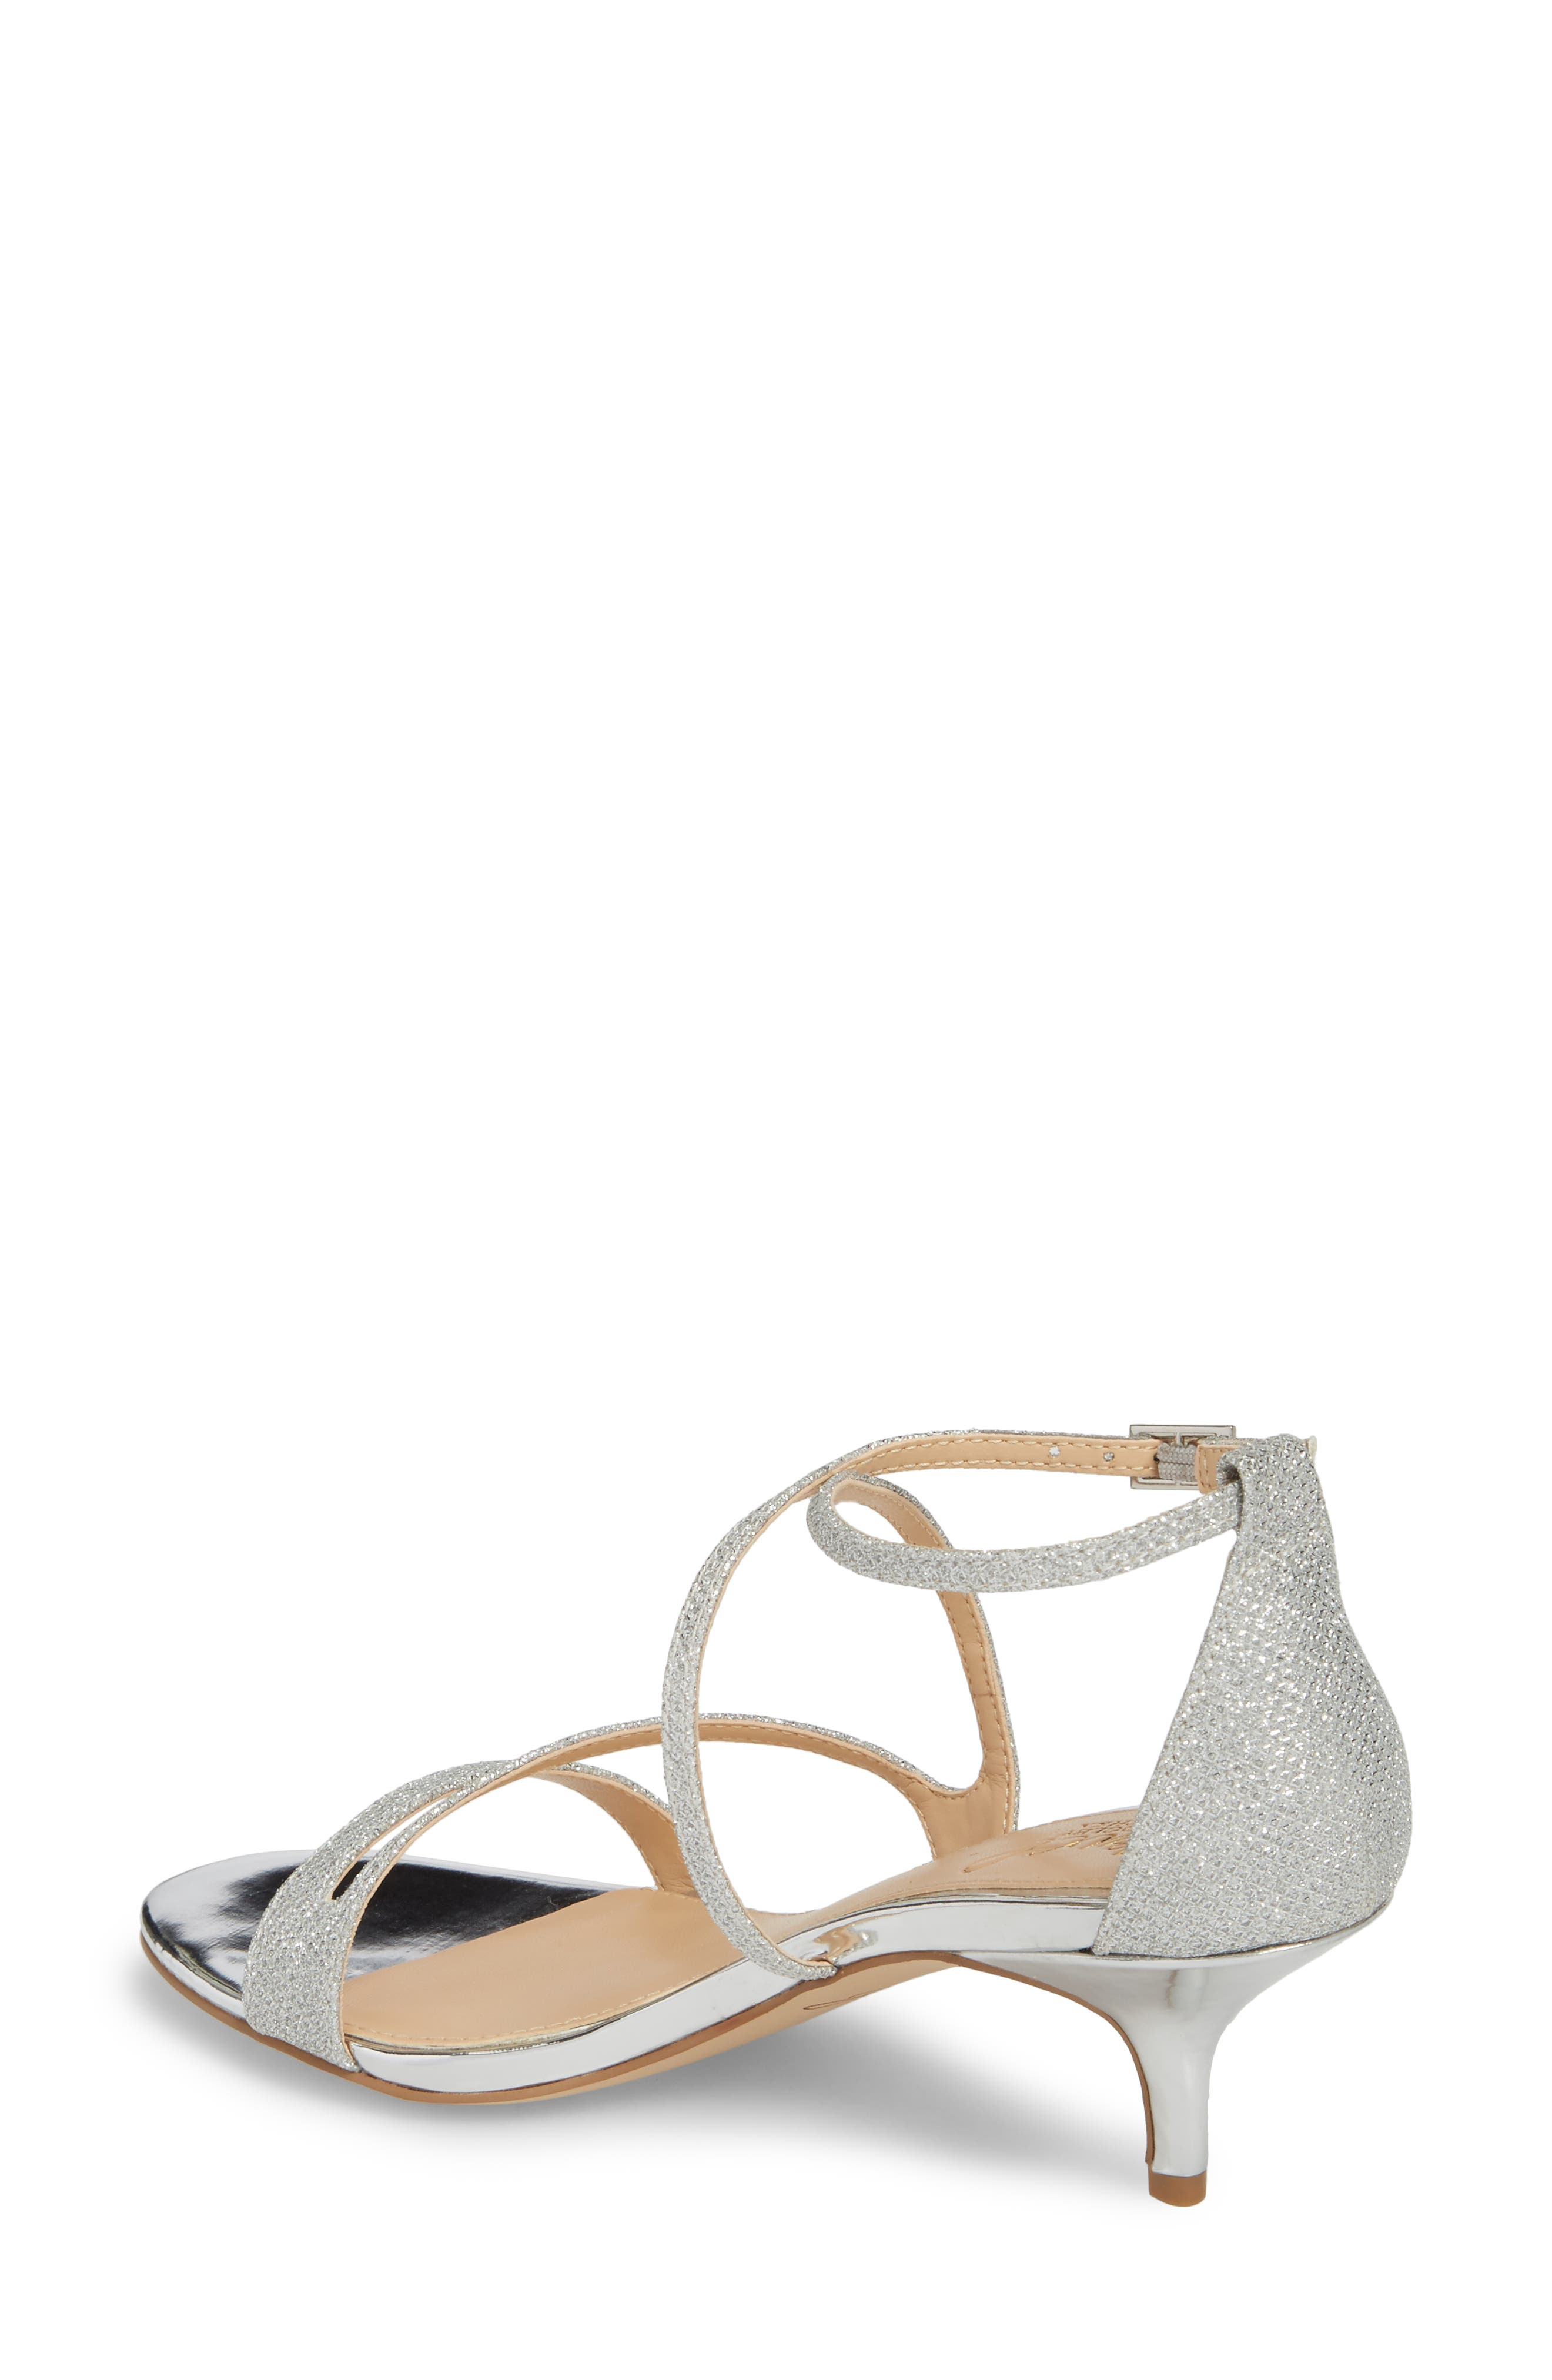 Gal Glitter Kitten Heel Sandal,                             Alternate thumbnail 2, color,                             SILVER GLITTER FABRIC